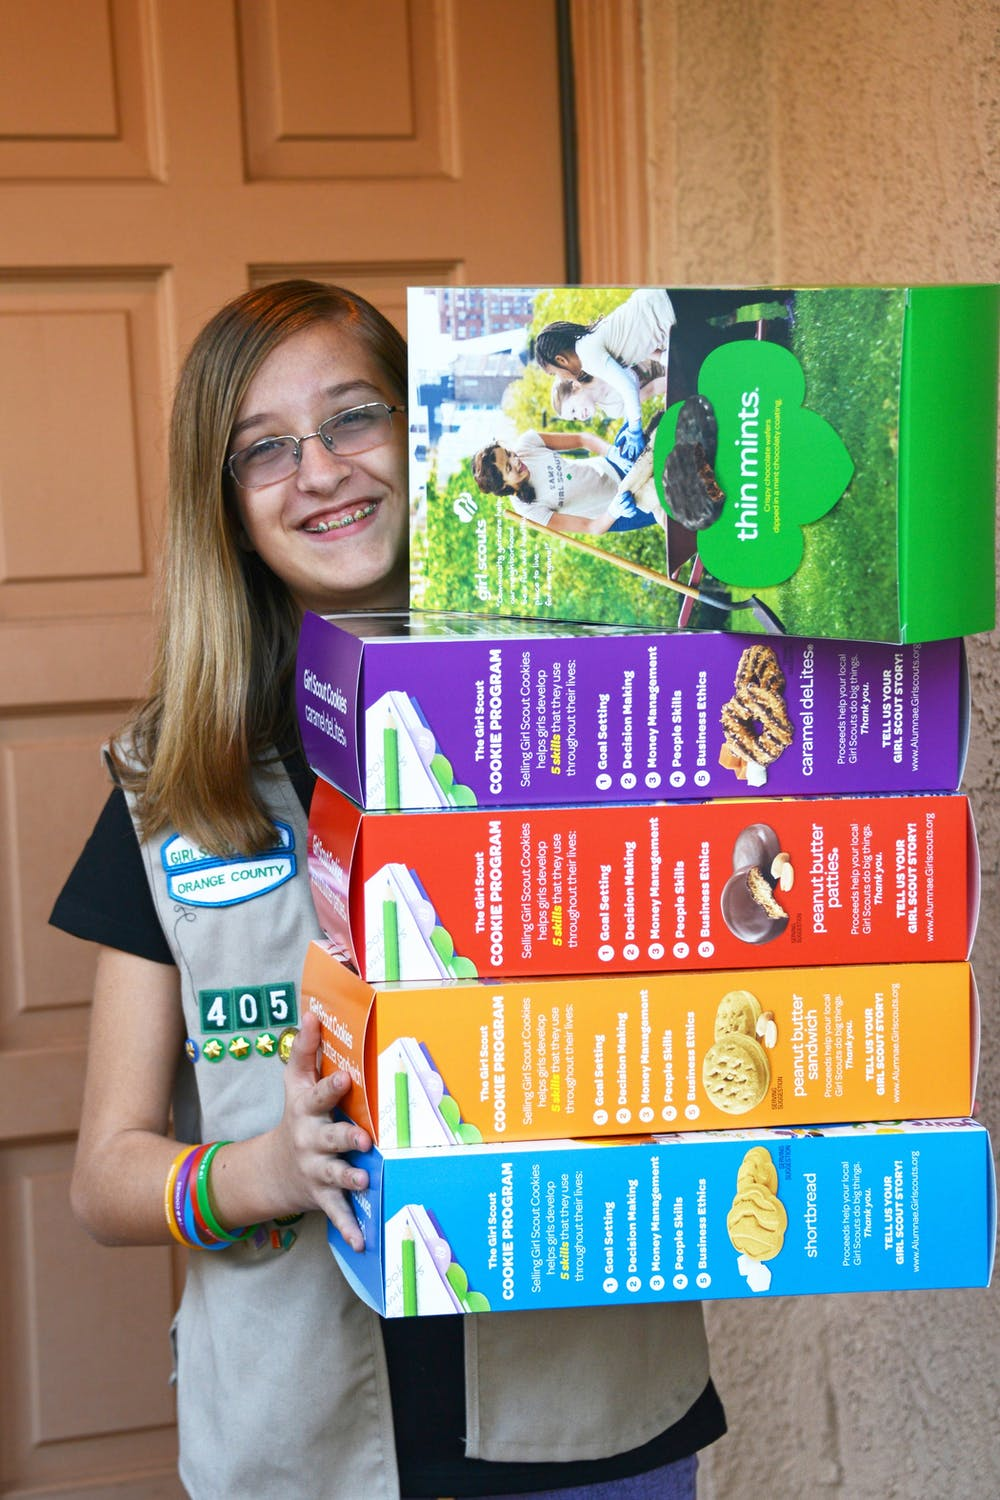 a34ba1a9d7339 Buying cookies for the armed forces from the Girl Scout next door because  you know her is a sign that social motivations shape your charitable giving.